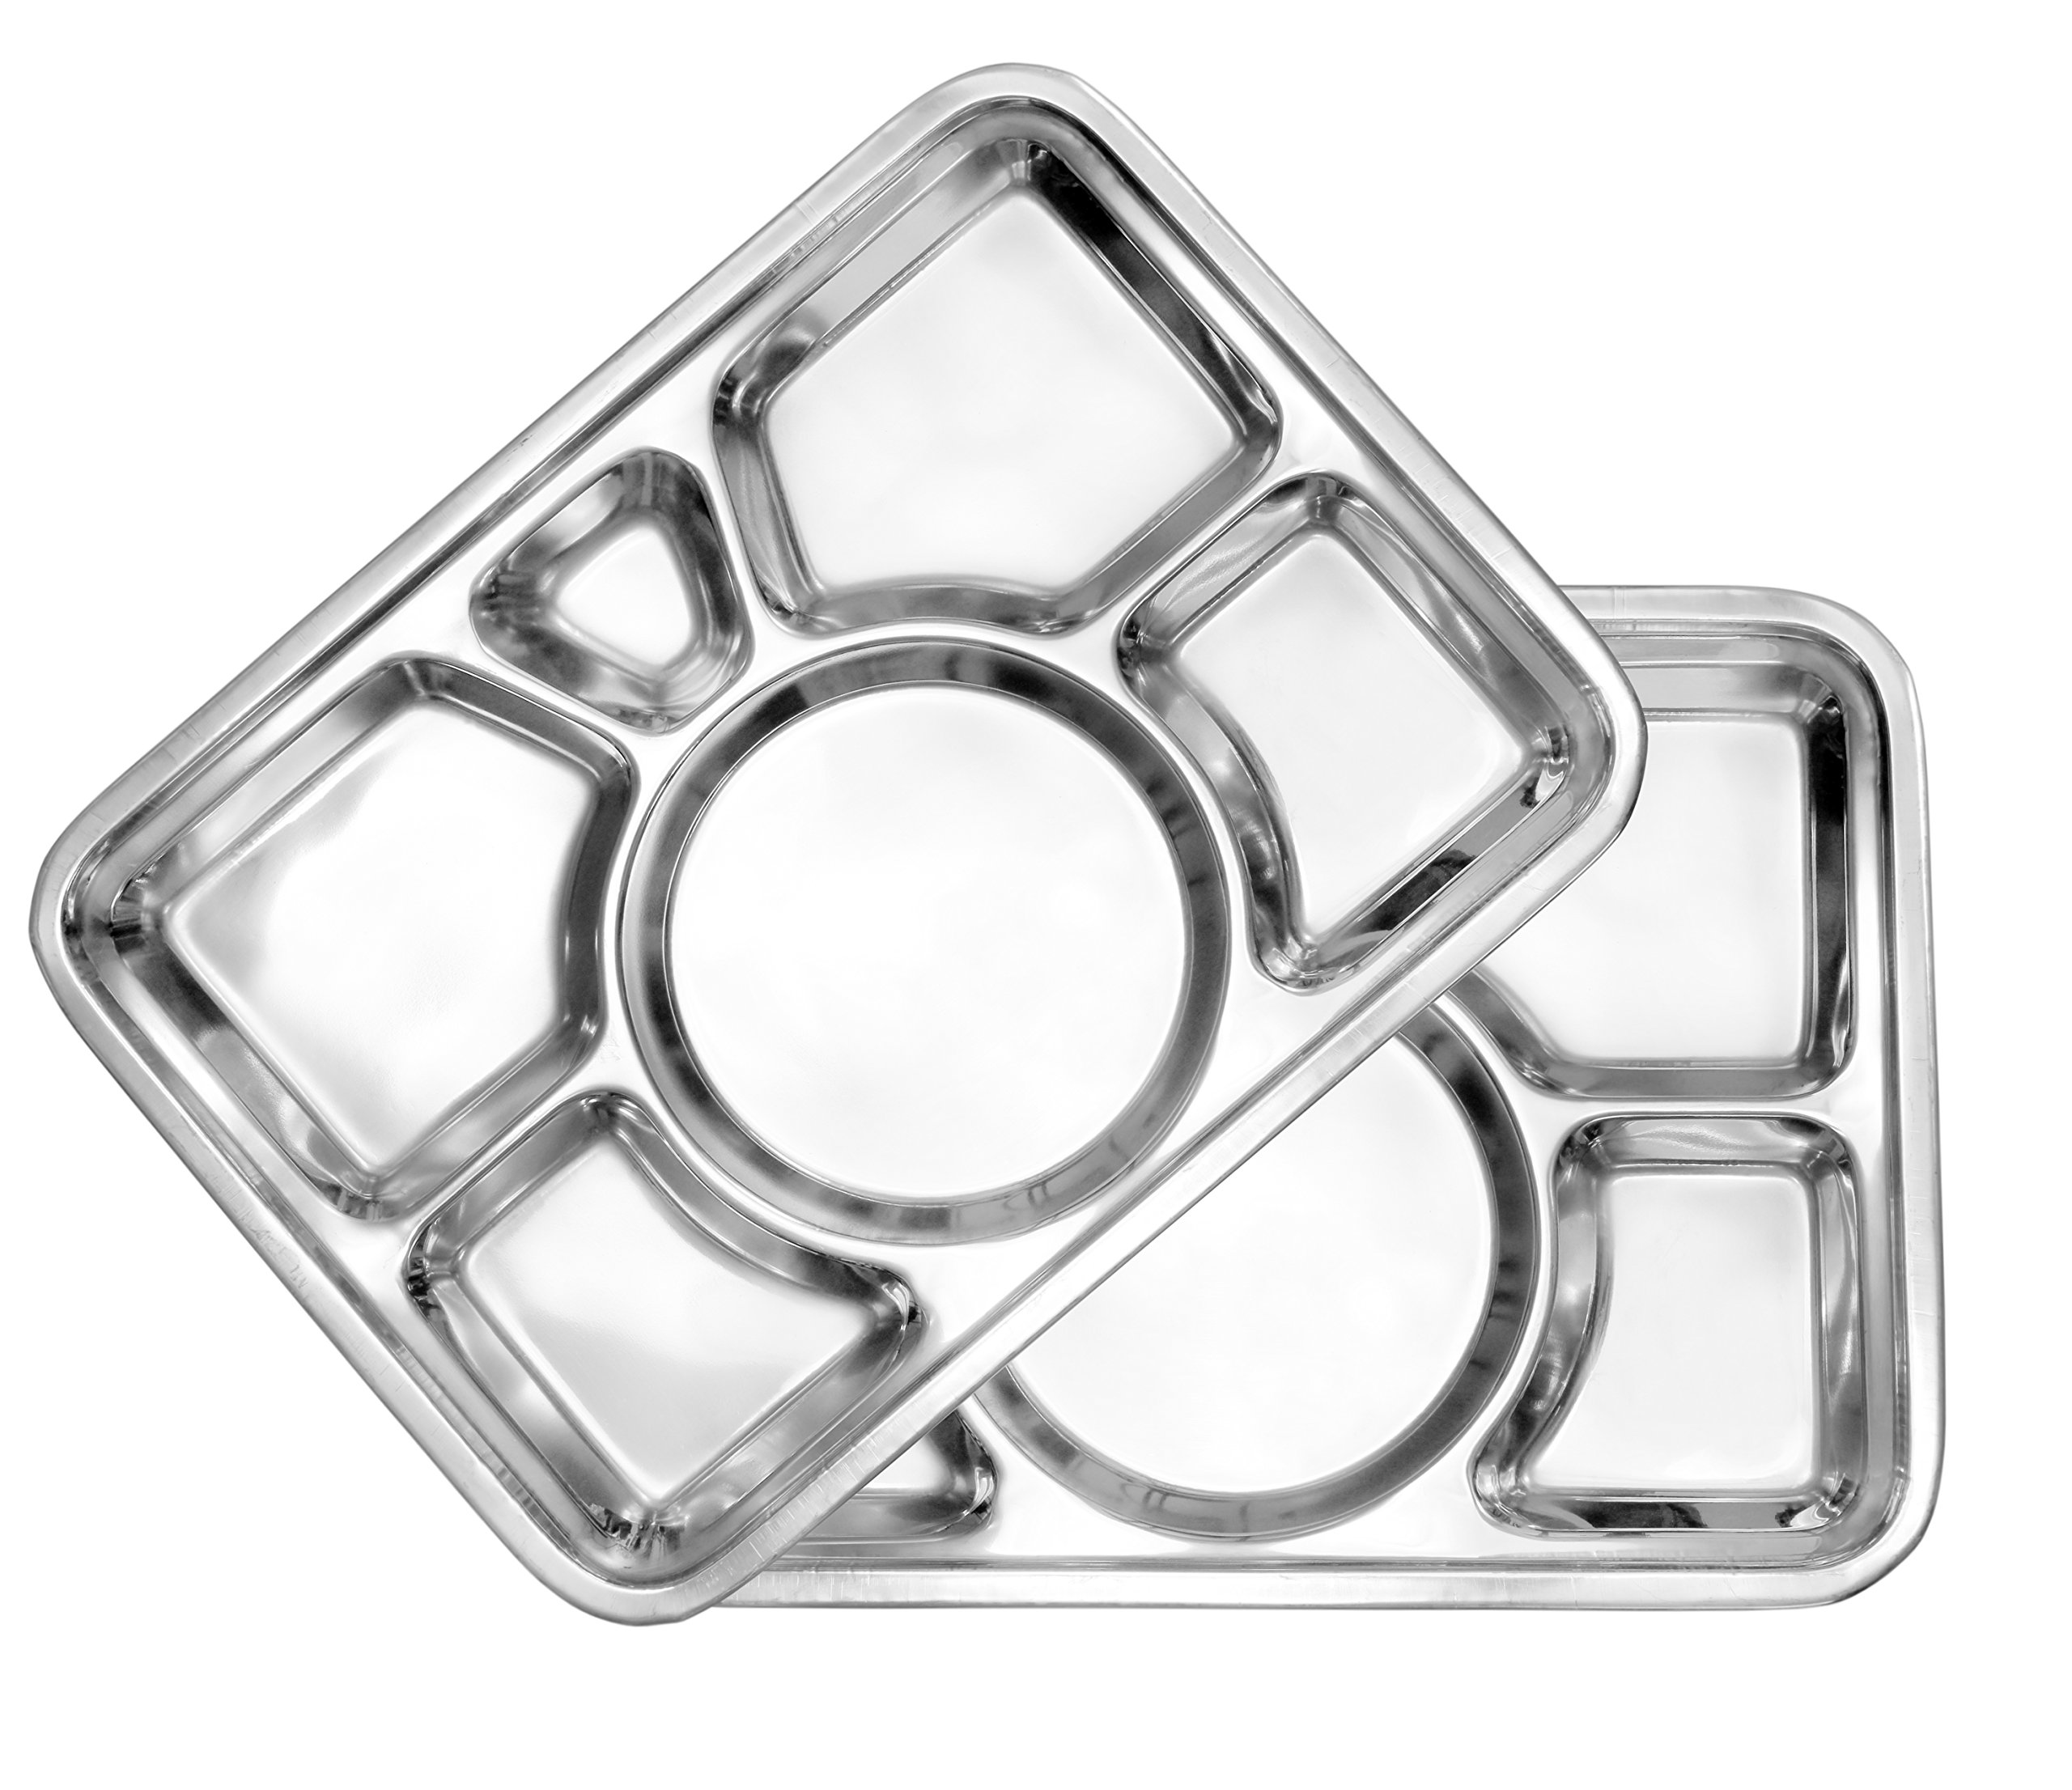 Cafeteria Mess Trays (2-Pack); Stainless Steel 16 In. x 11 In. Rectangular 6-Compartment Divided Plates/Cafeteria Food Trays